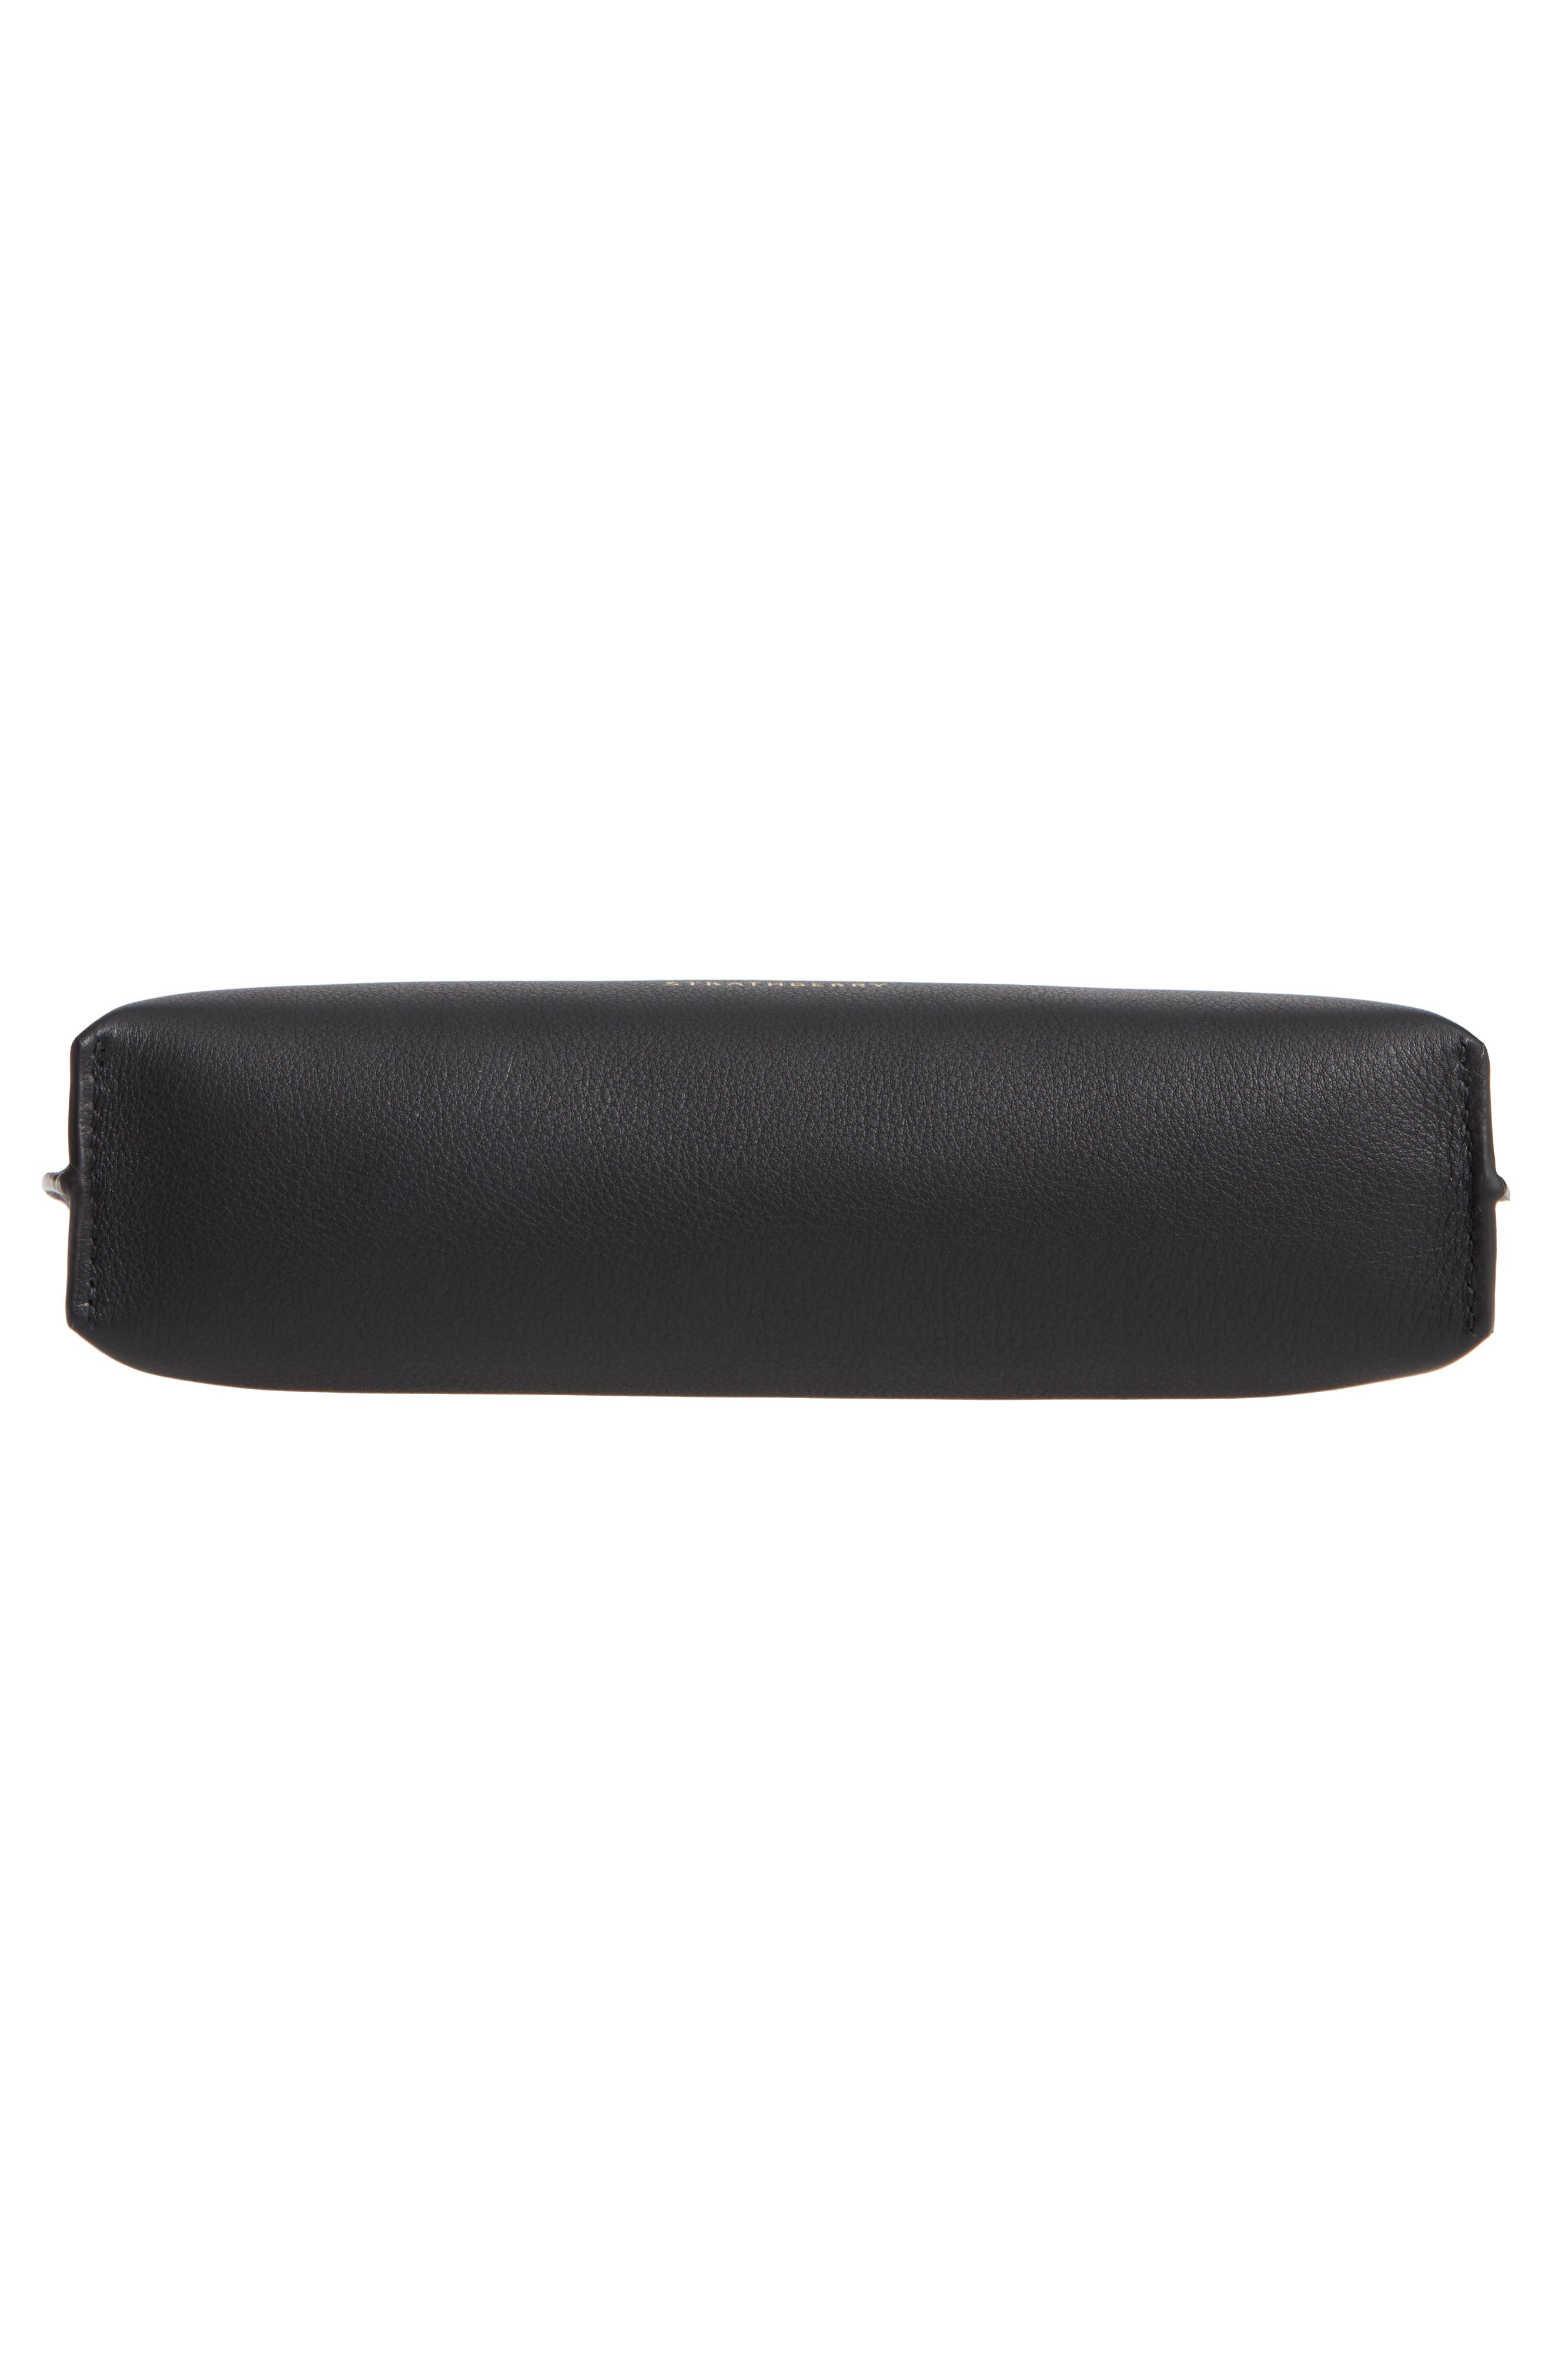 STRATHBERRY, East/West Stylist Calfskin Leather Clutch, Alternate thumbnail 6, color, BLACK